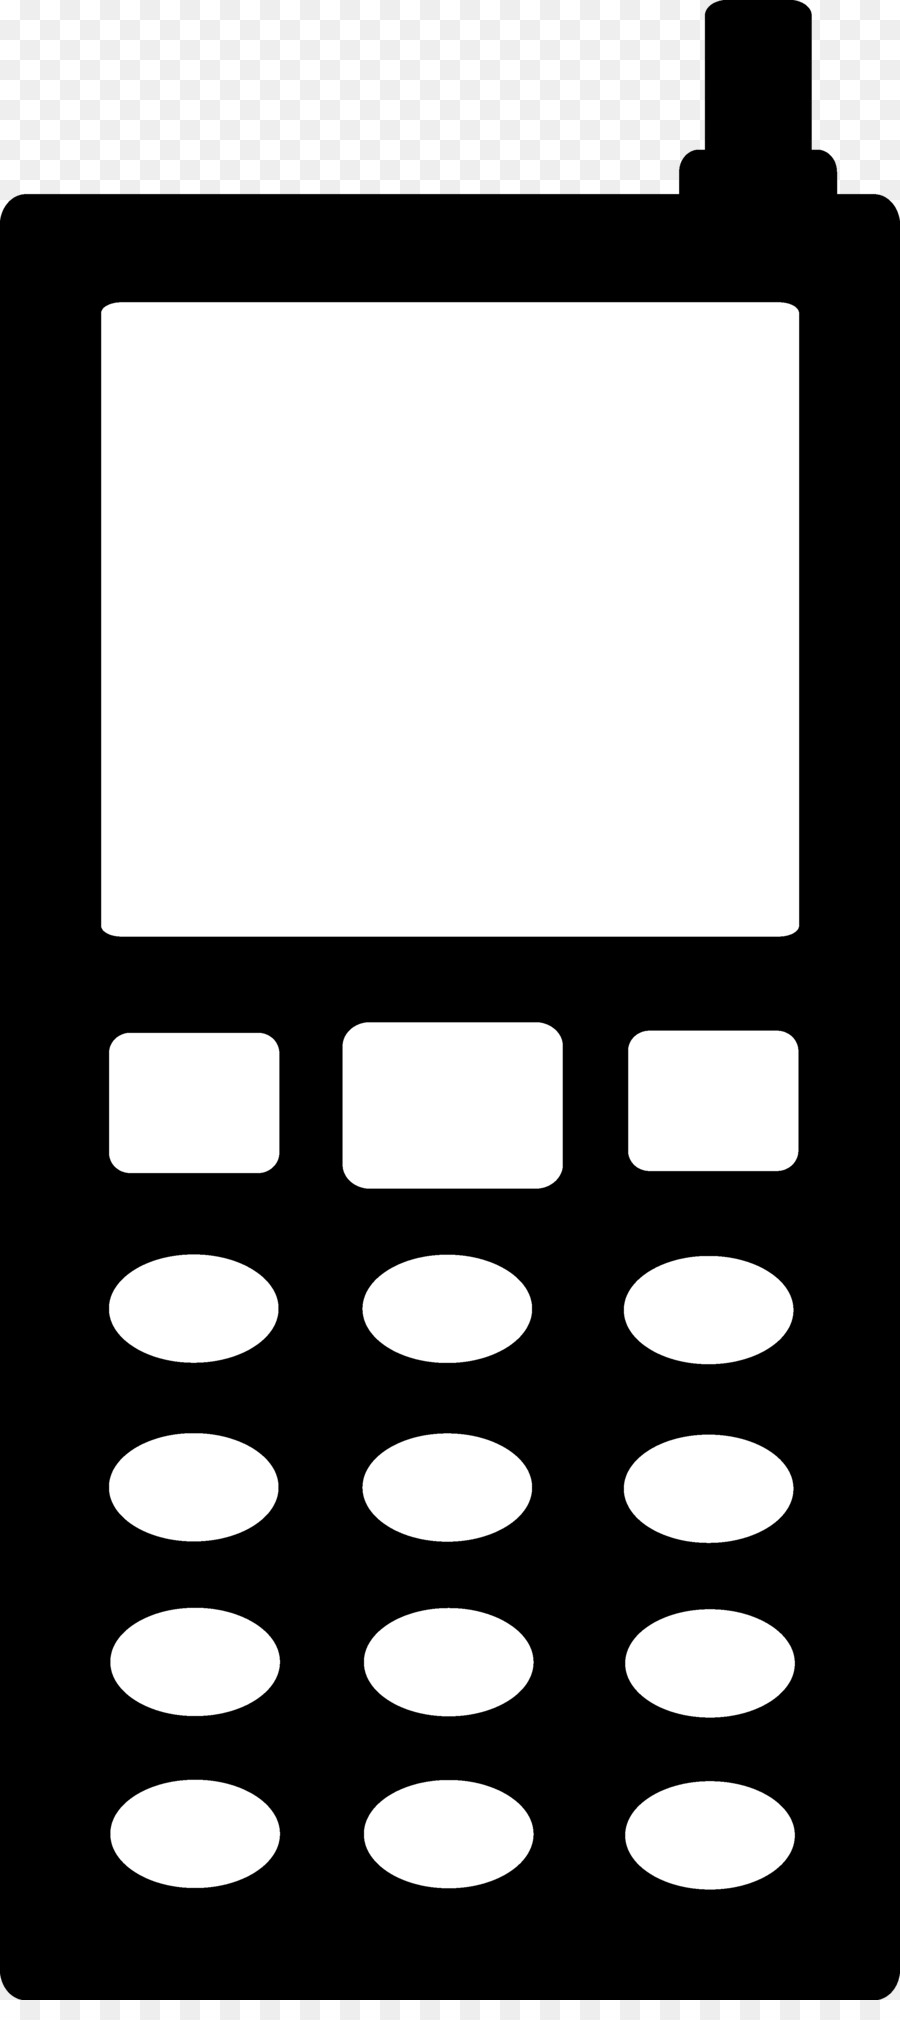 telephone silhouette clip art no cell phone clipart png download rh kisspng com cell phone clipart black and white